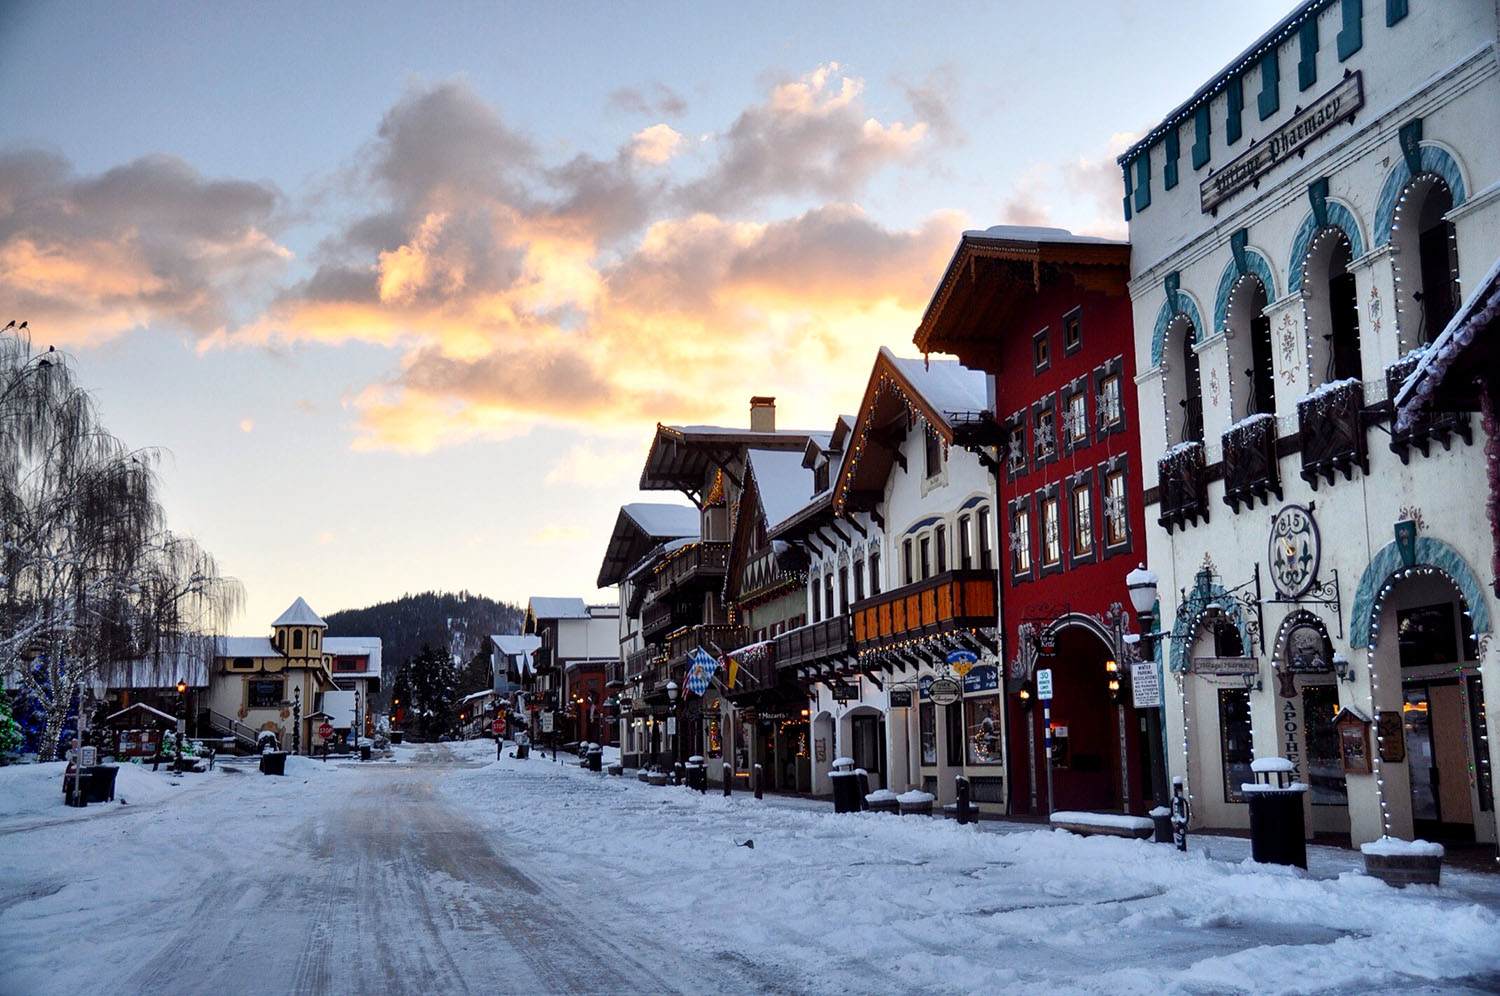 German Christmas Village Washington State.Leavenworth Washington Local Guide With Best Things To Do